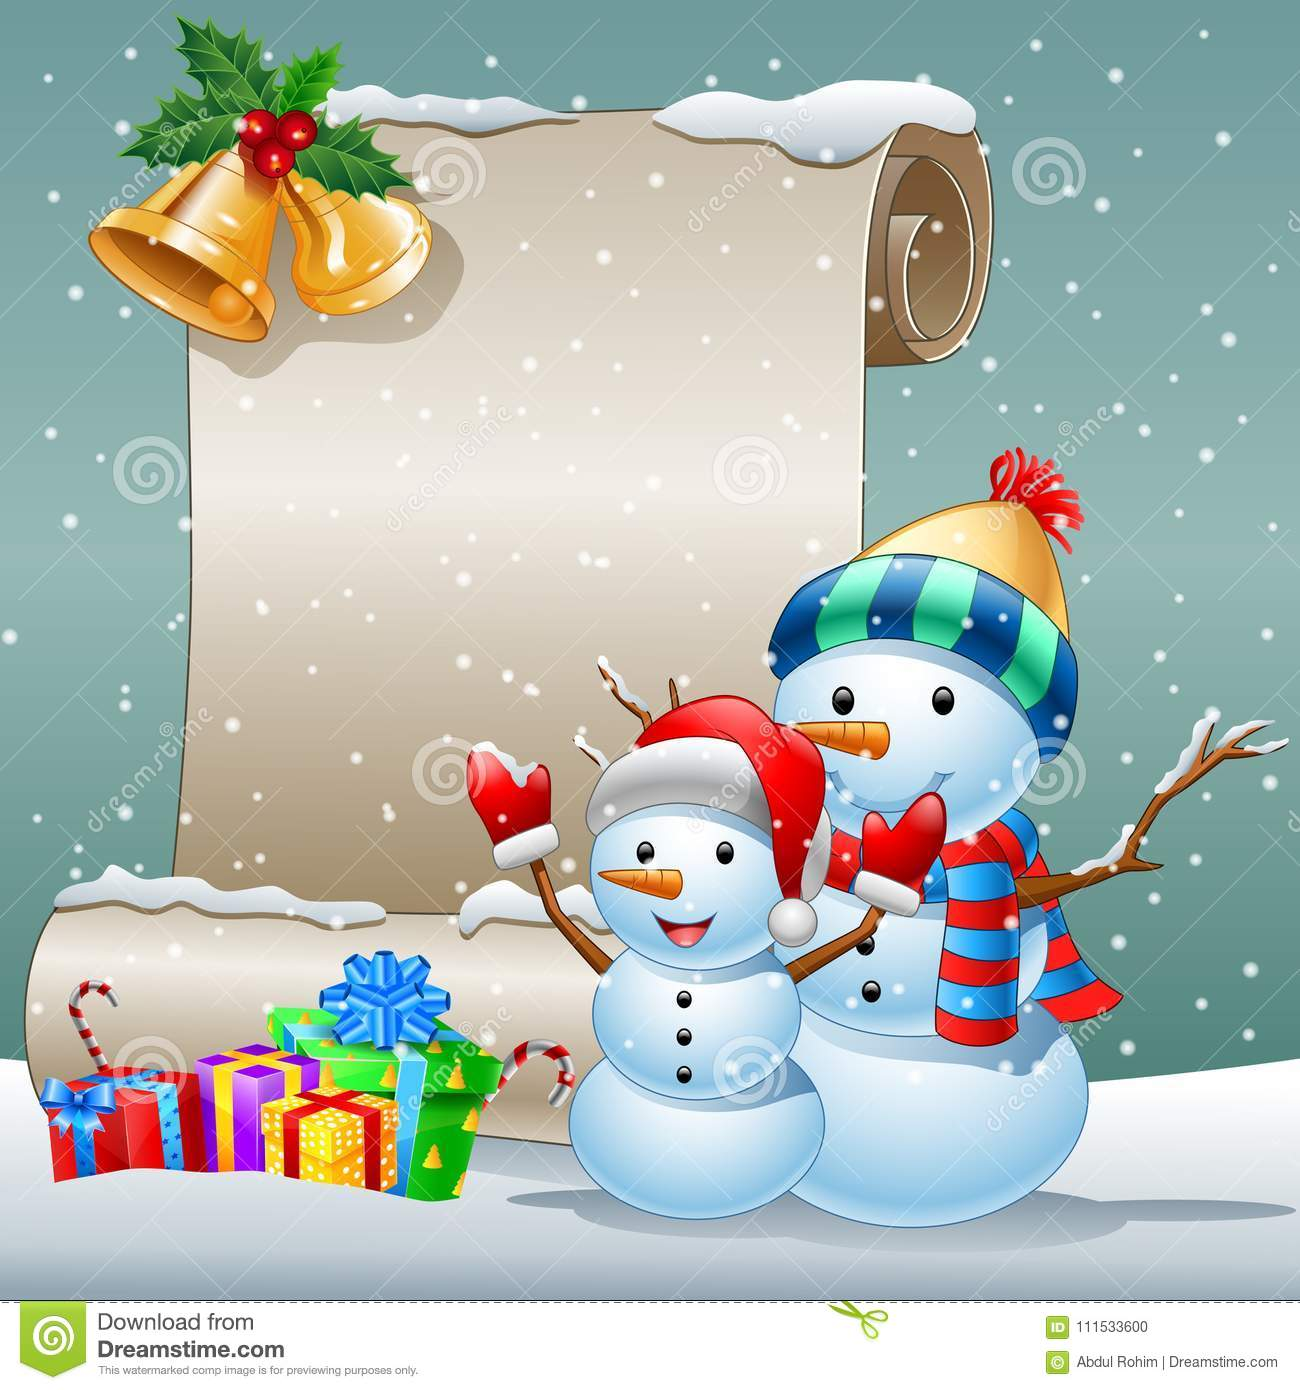 Christmas Card With A Snowman And Gift Boxes On Winter